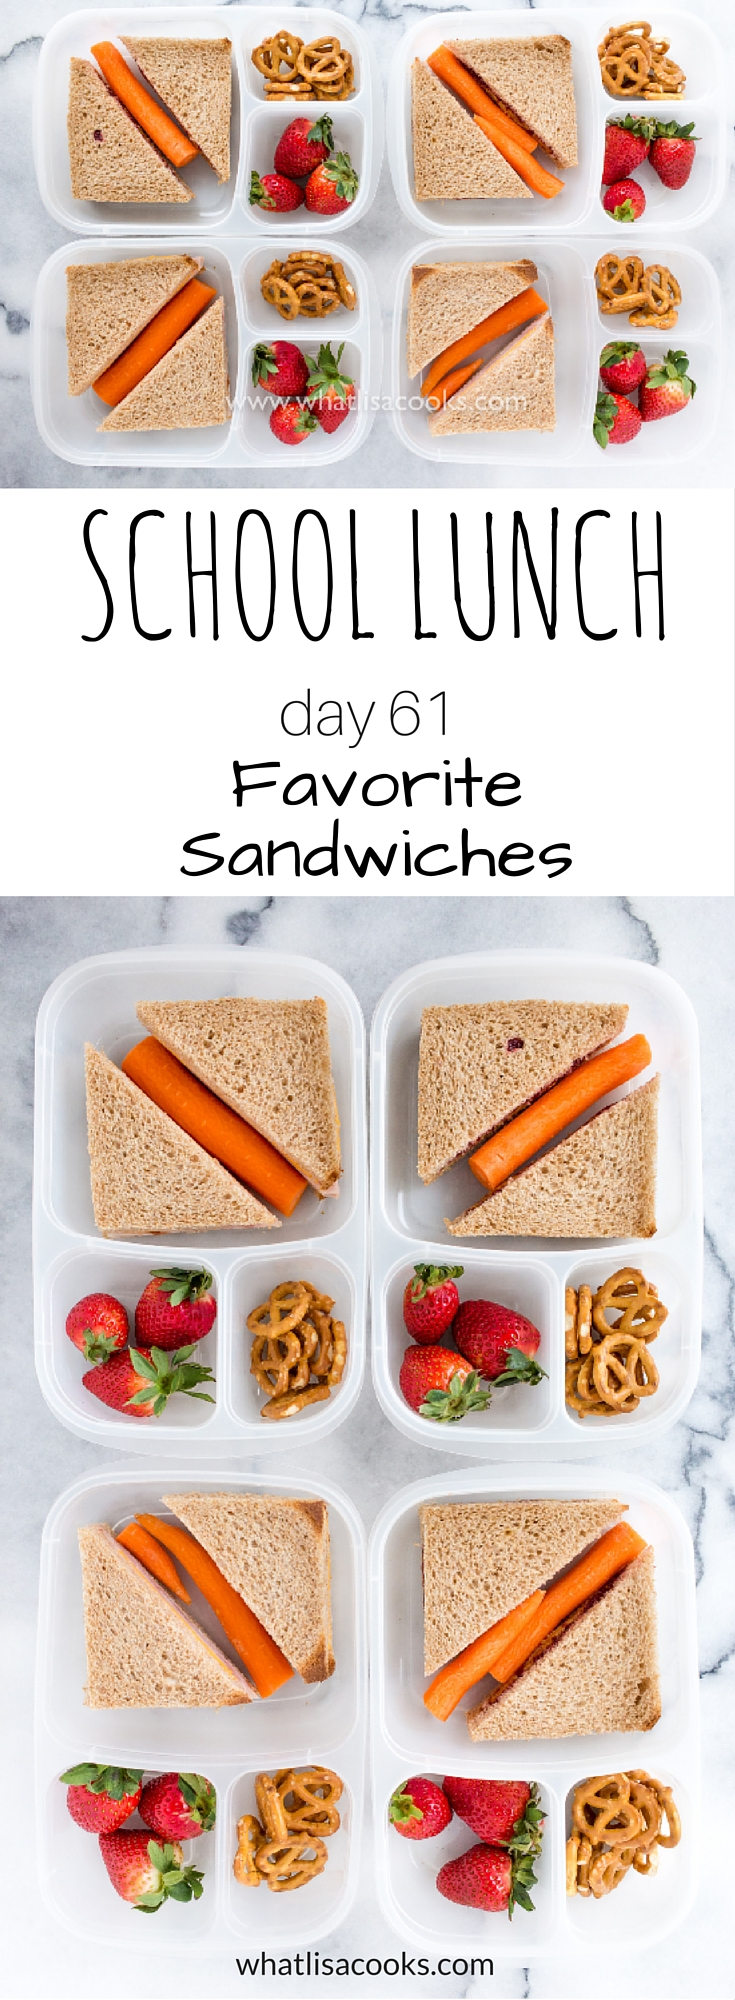 School Lunch Day 61 - simple sandwiches from WhatLisaCooks.com